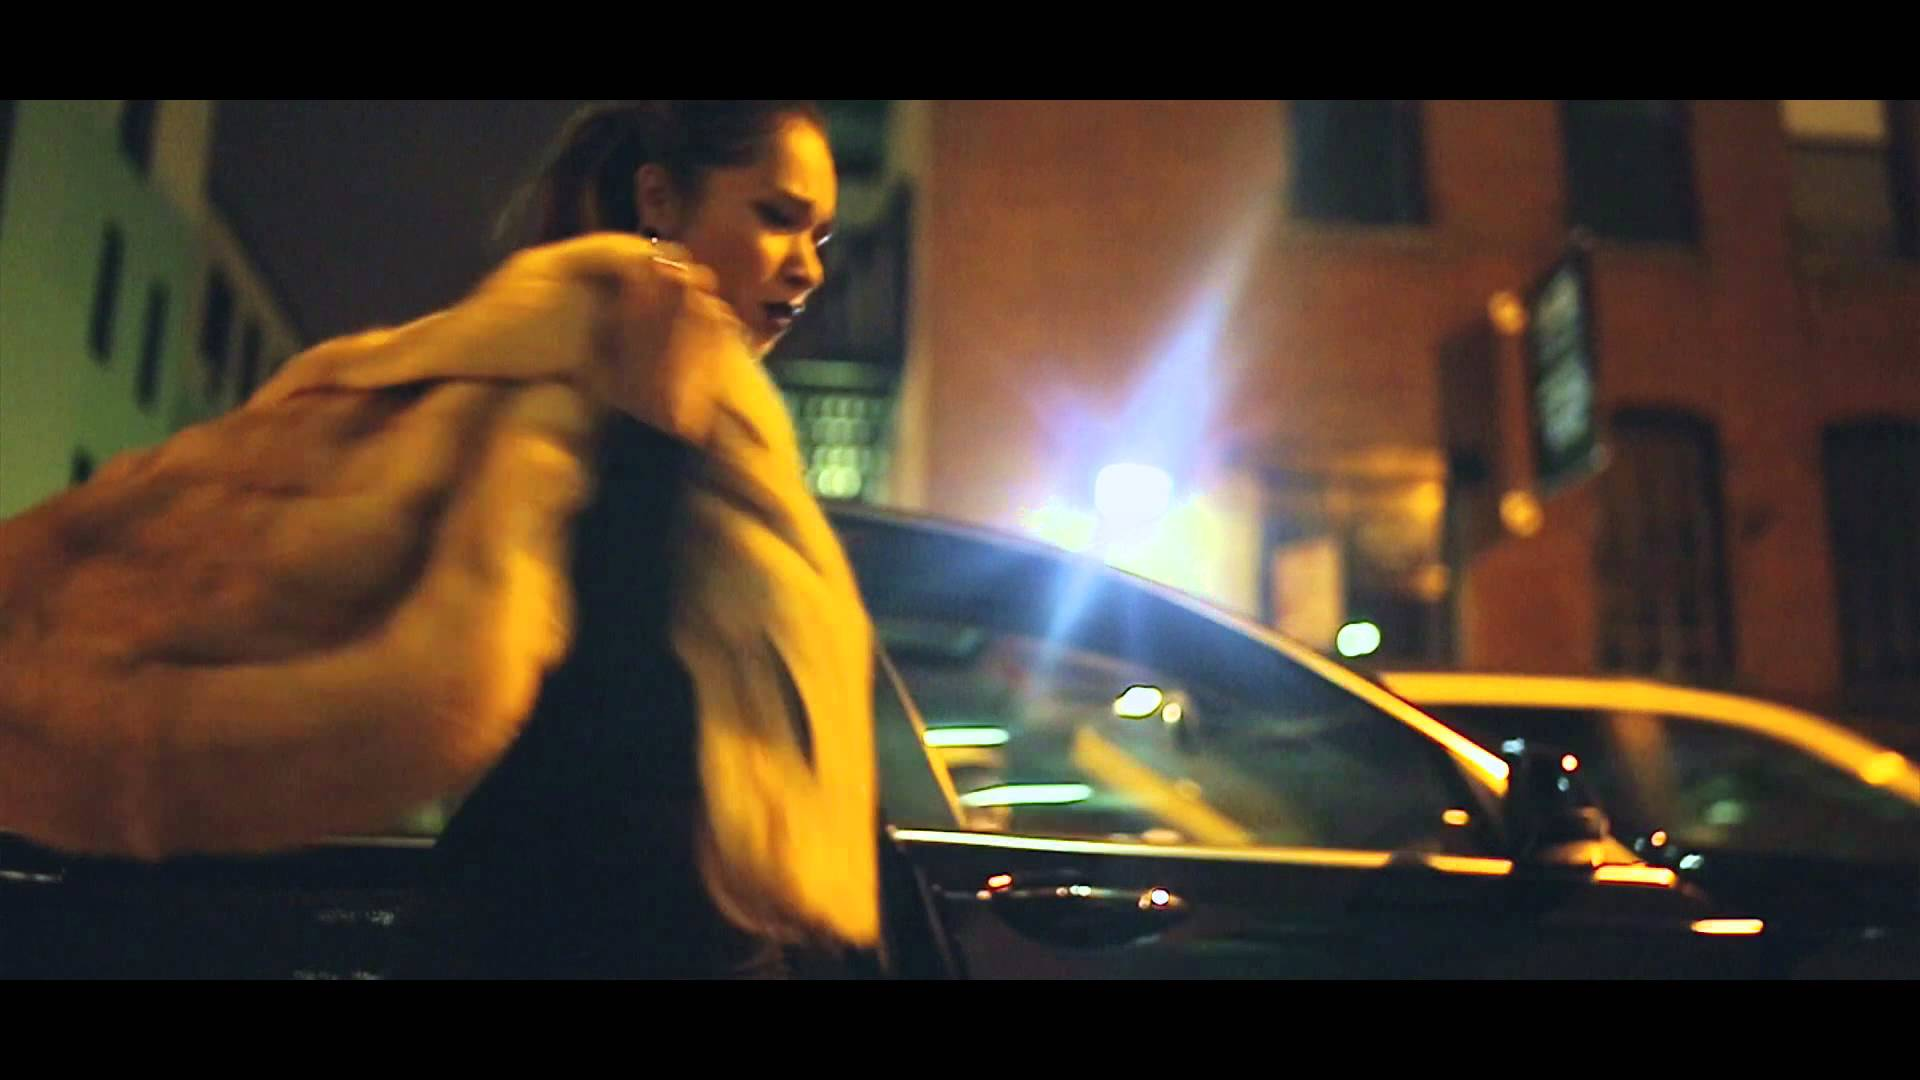 Lumidee ft Cristion D'or – BHxKD (Broken Heart's x Killing Dreams) (Official Video)